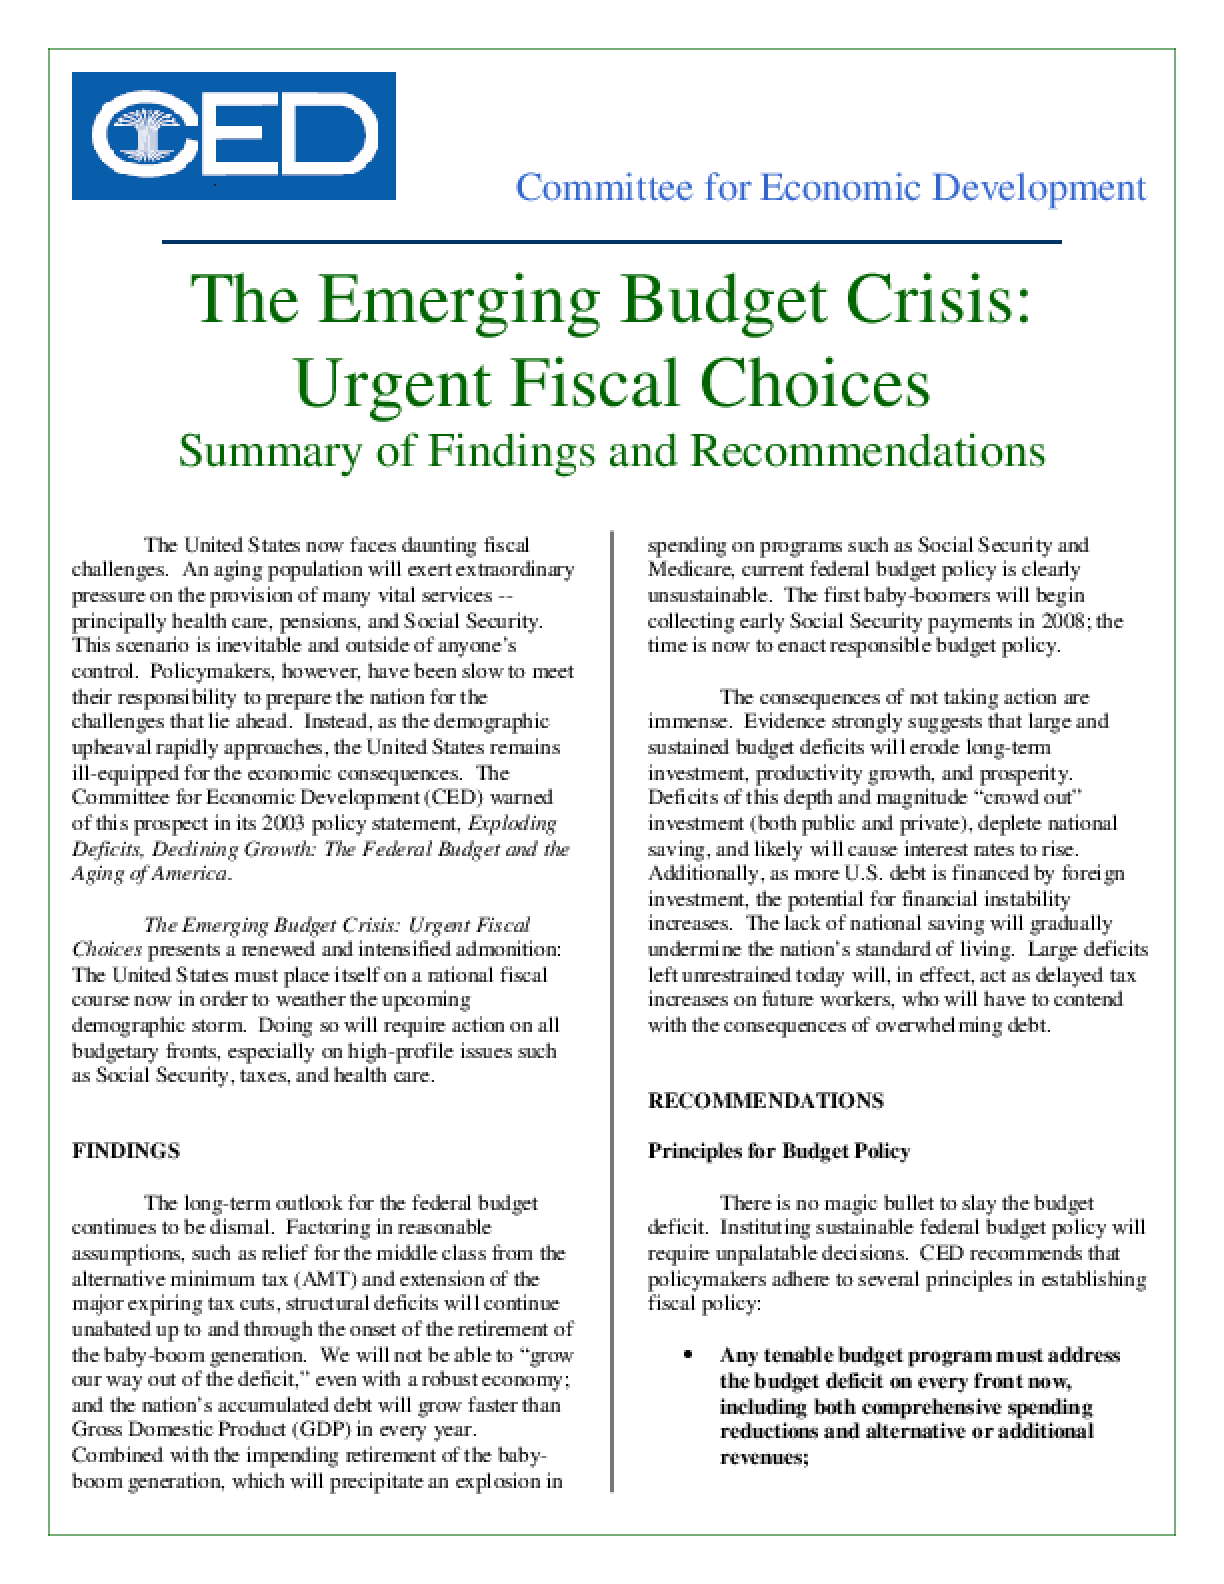 The Emerging Budget Crisis: Urgent Fiscal Choices - Executive Summary